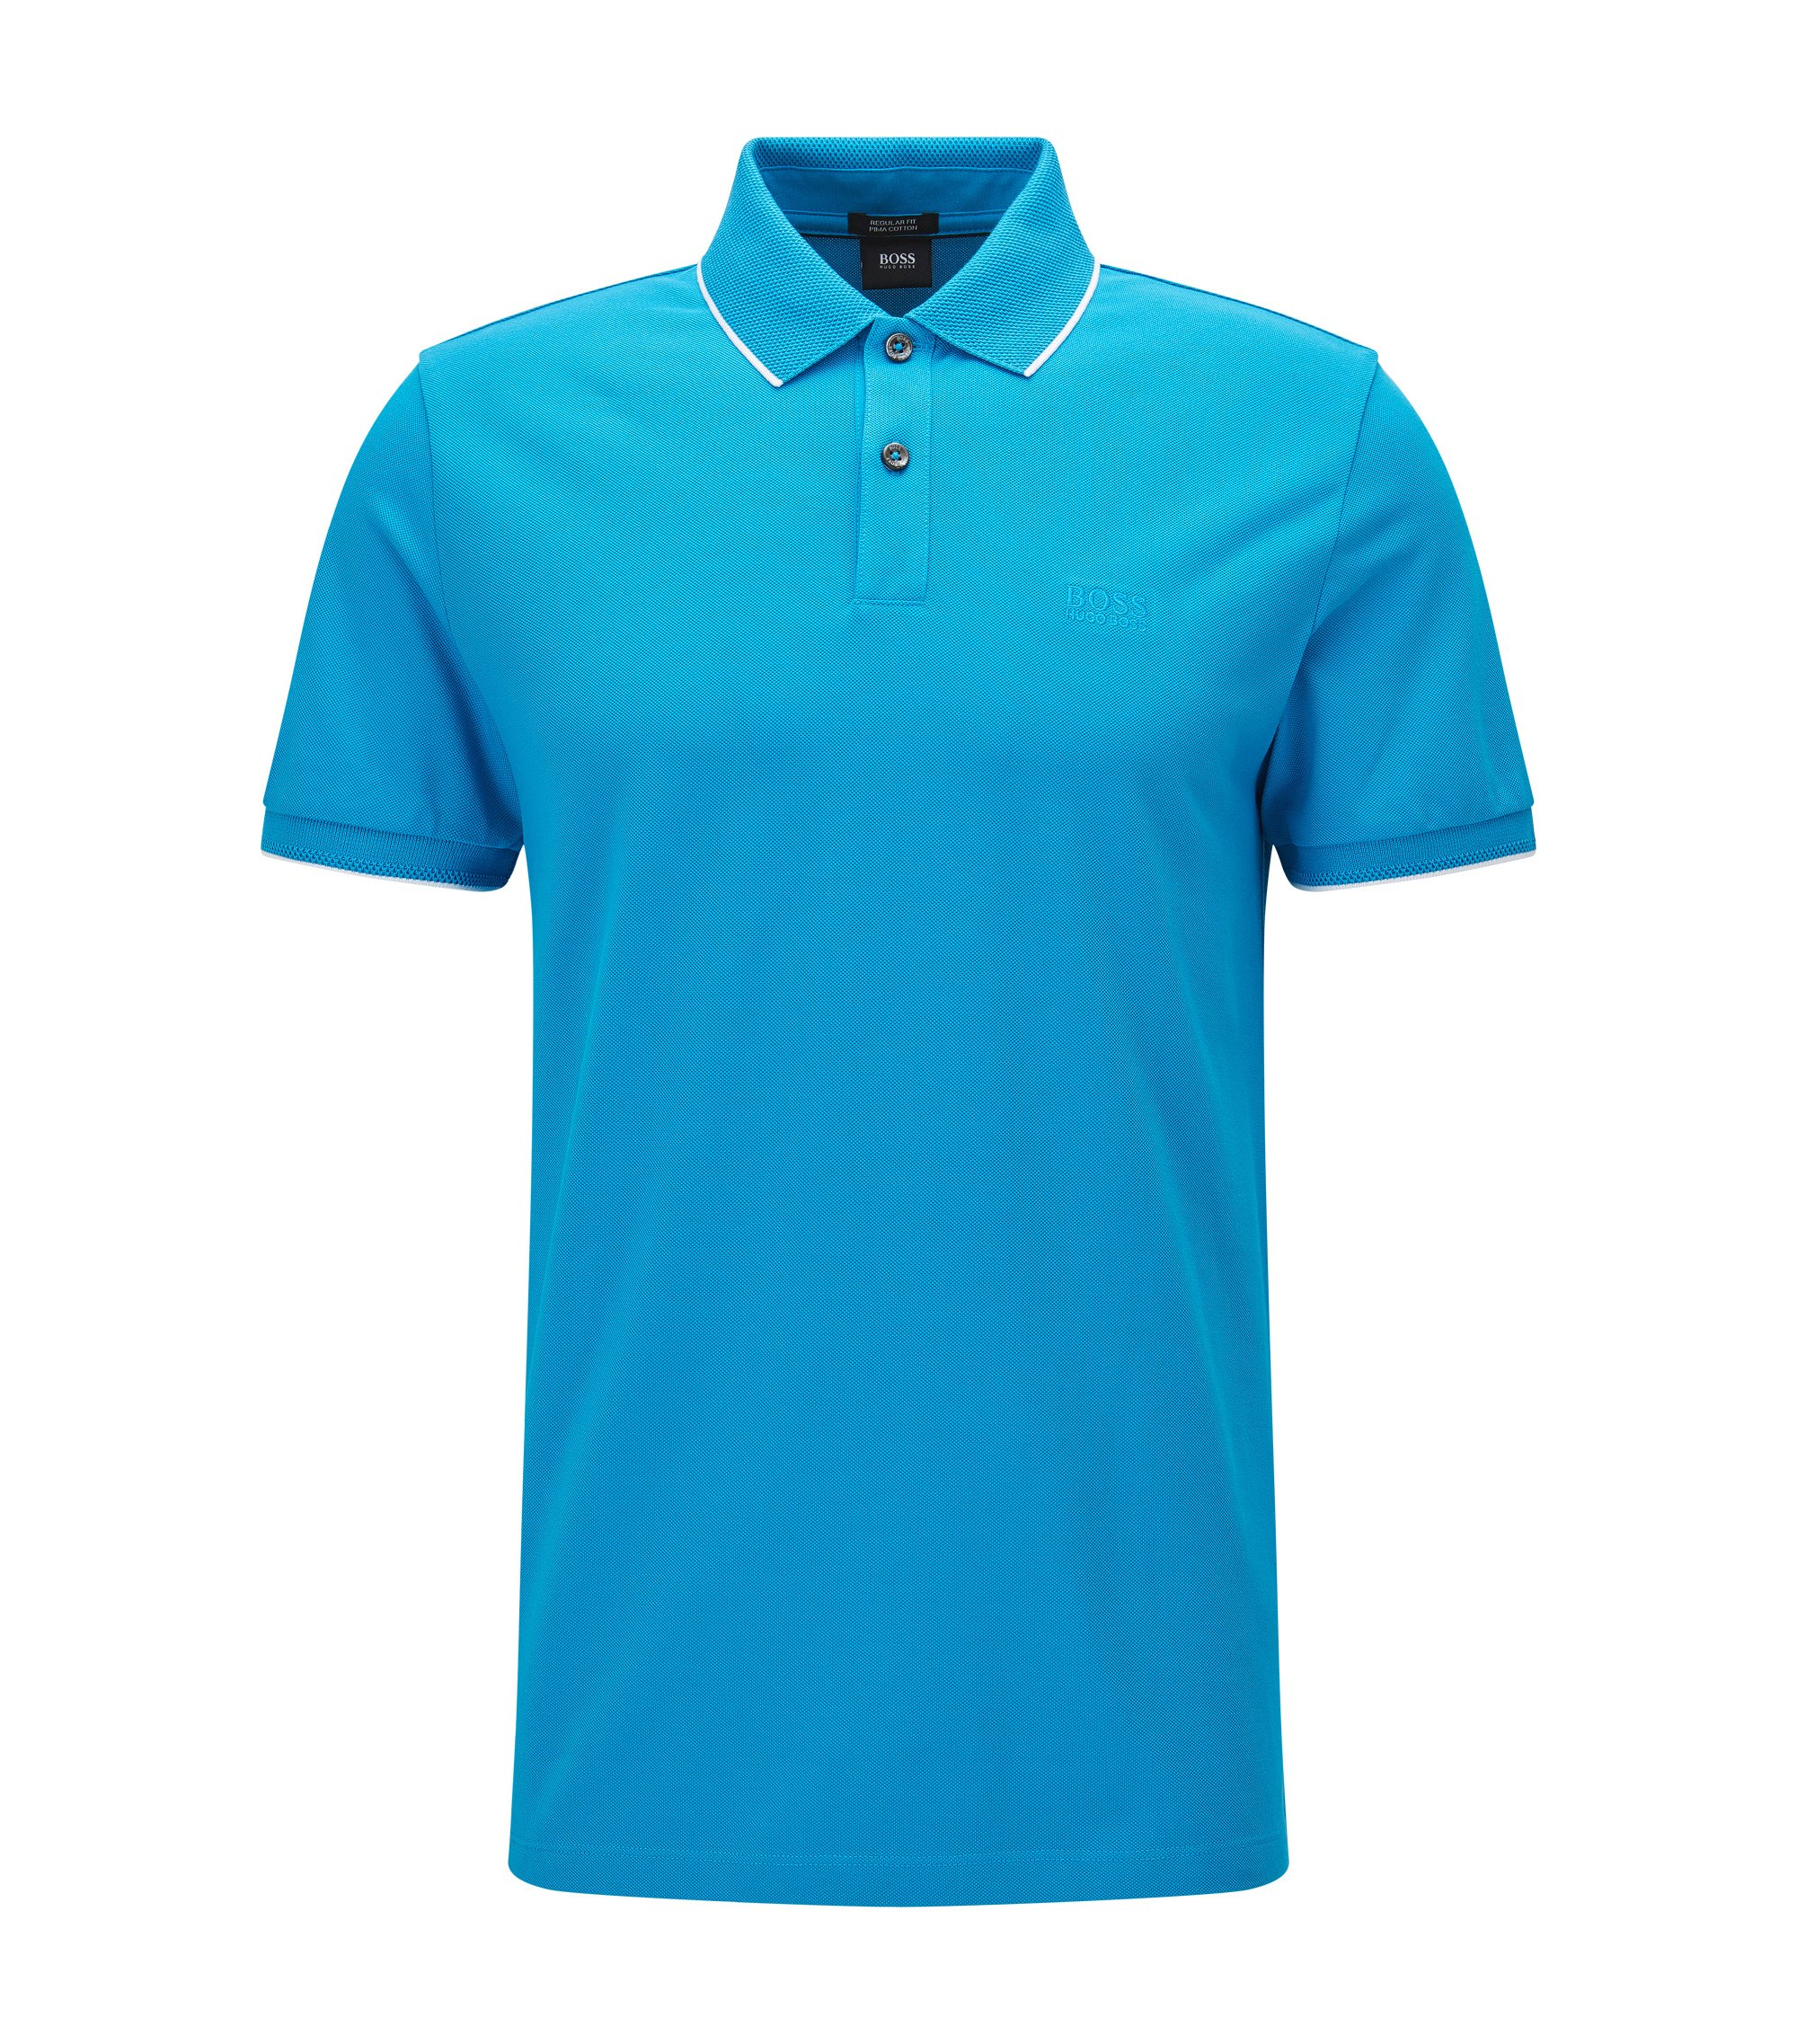 Cotton Polo Shirt, Regular Fit | Parlay , Light Blue